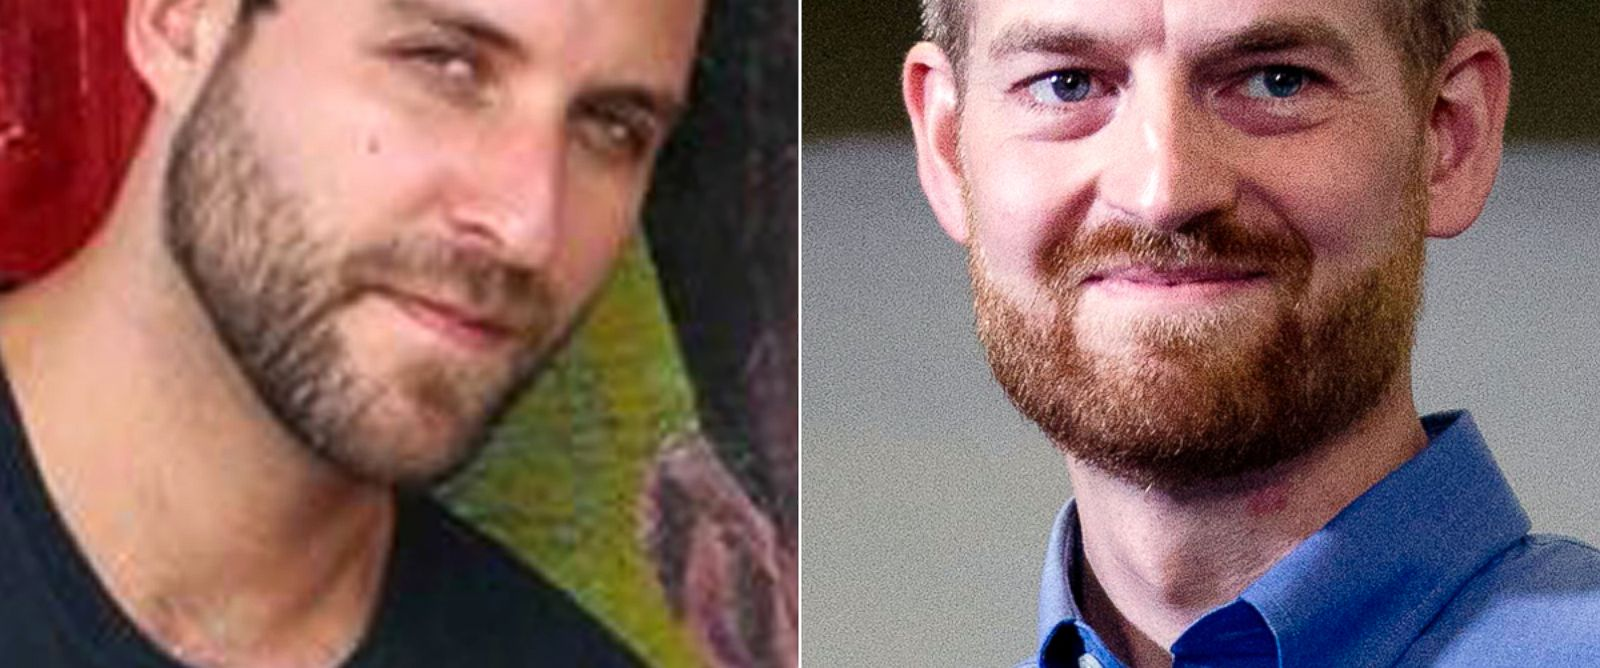 PHOTO: Ashoka Mukpo, pictured in this undated Facebook photo, has been identified as the freelance American journalist who tested positive for Ebola. | Dr. Kent Brantly after being released from Emory University Hospital, Aug. 21, 2014, in Atlanta.